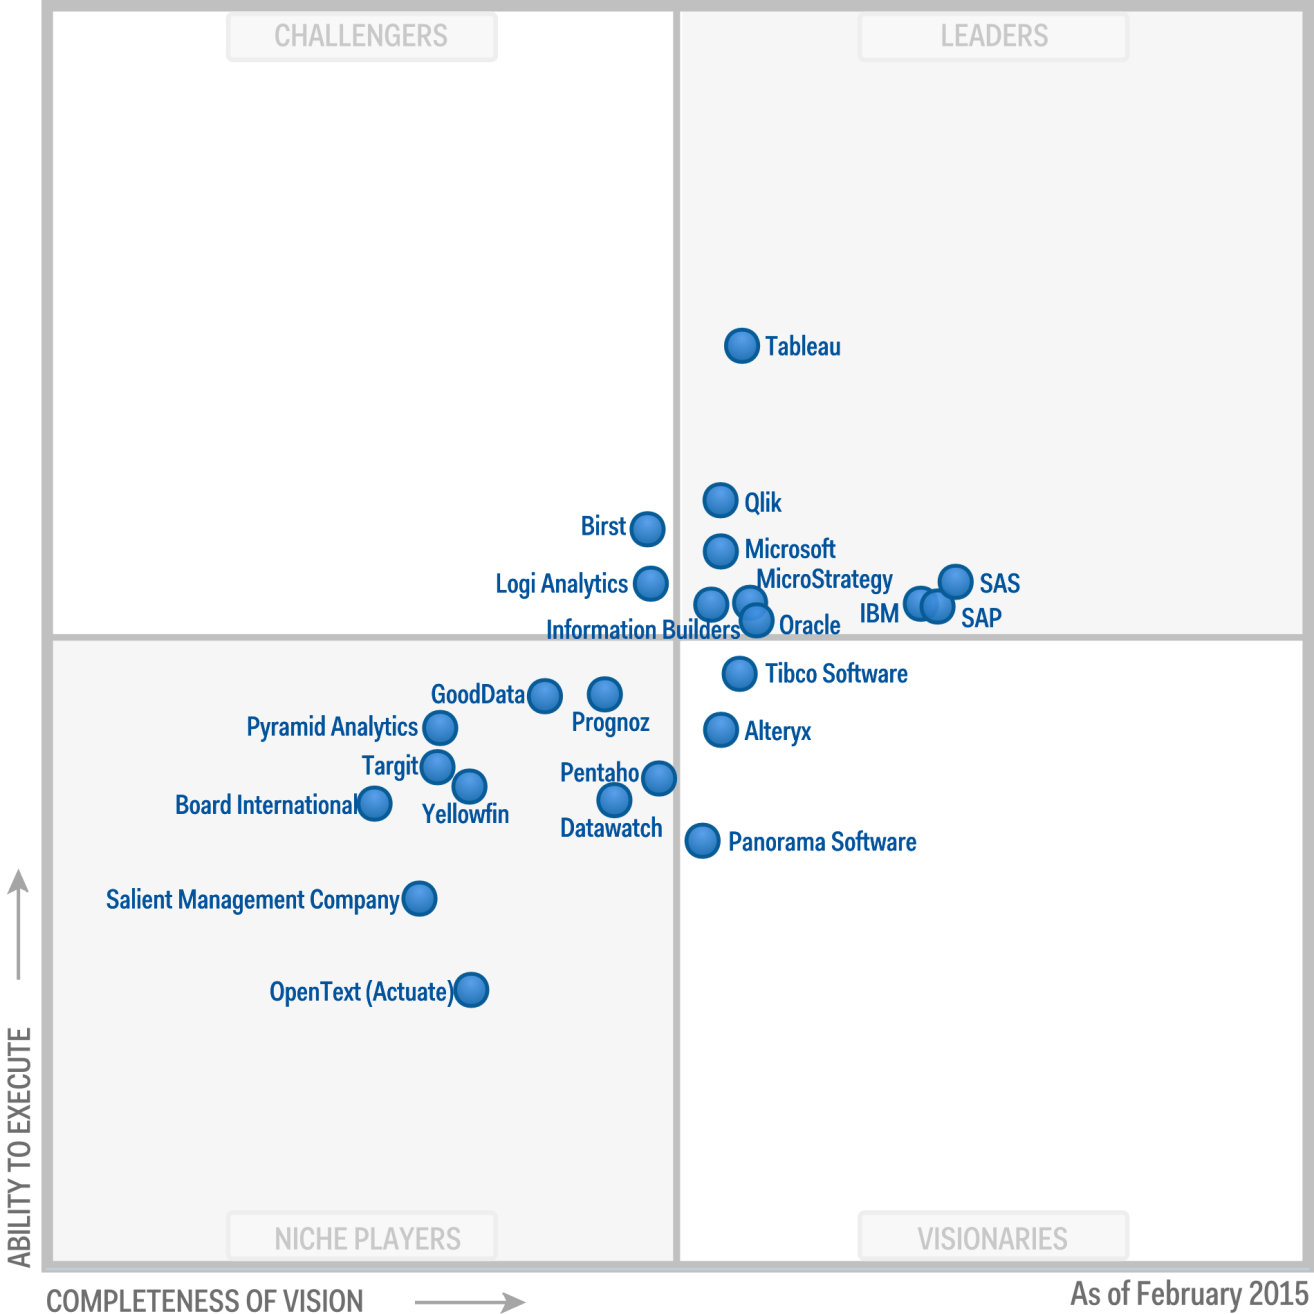 2014 Gartner Magic Quadrant for Business Intelligence and Analytics